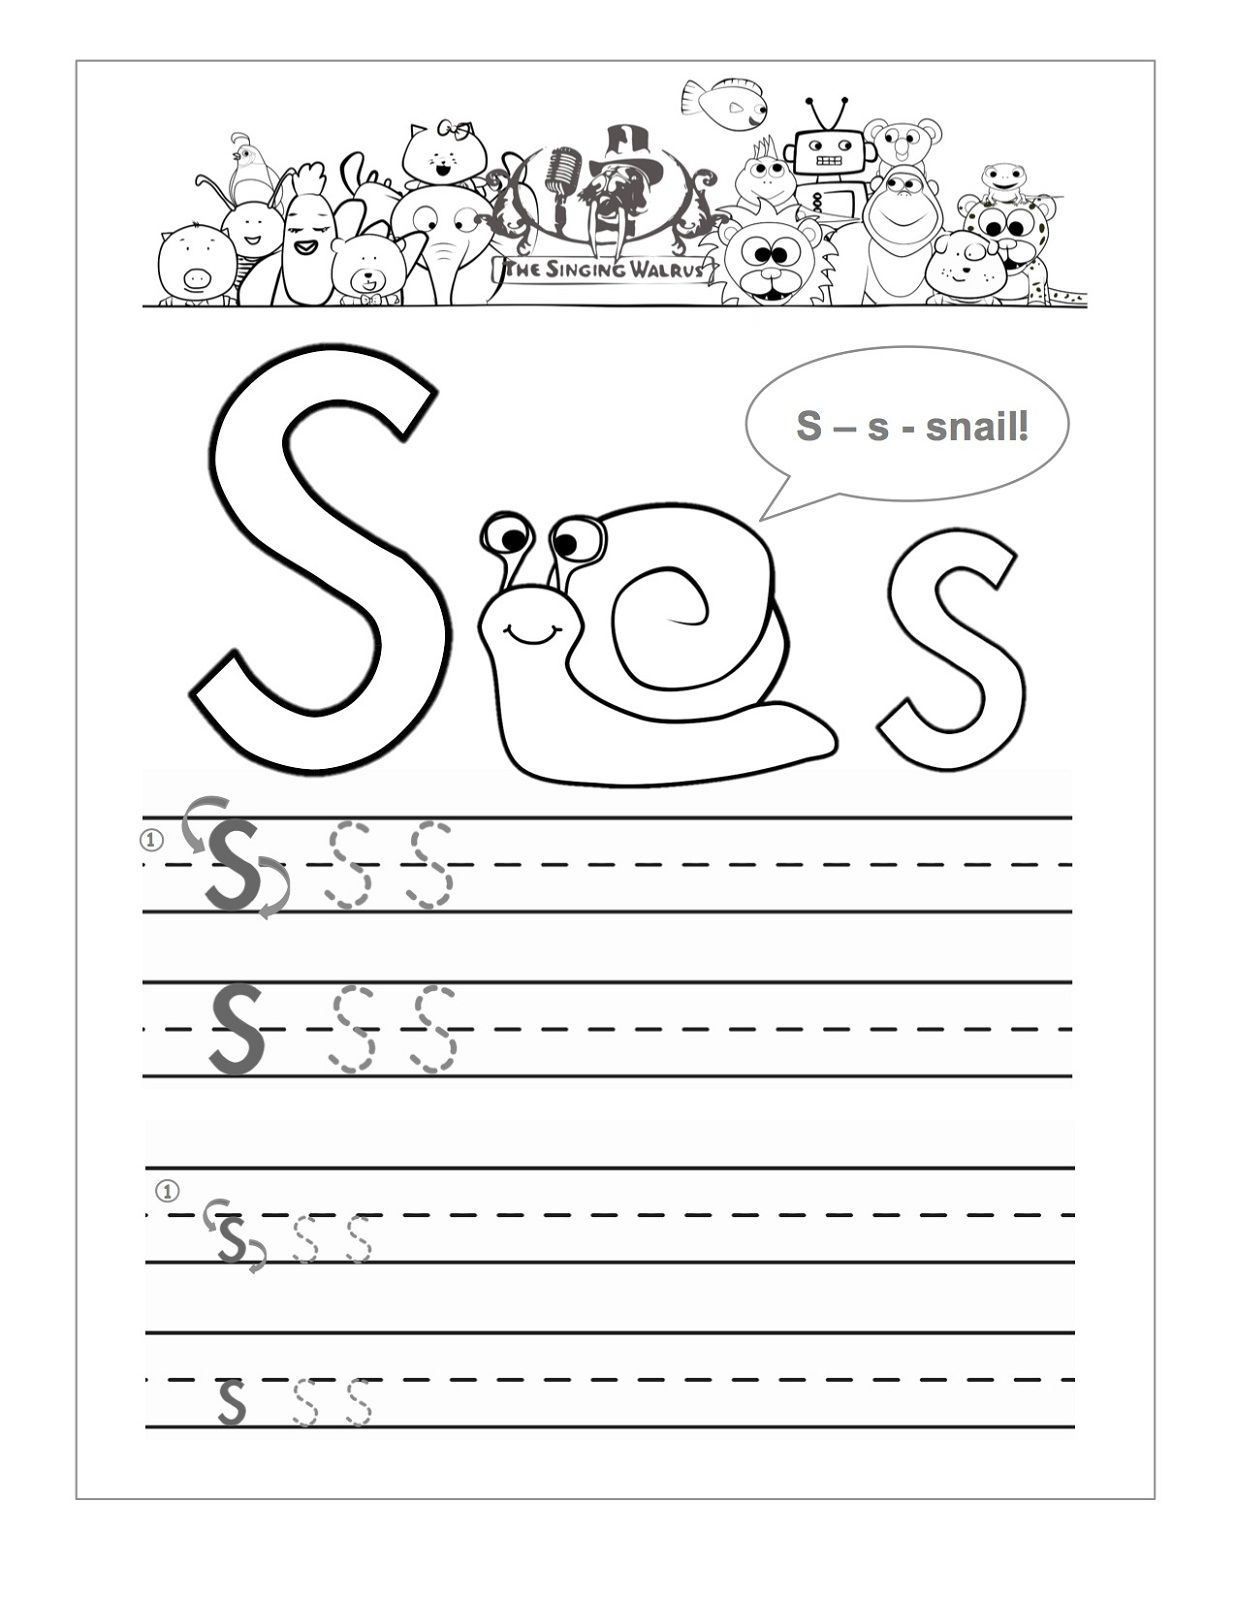 Letter S Worksheets Printable (With Images) | Letter S within Letter S Worksheets Pdf